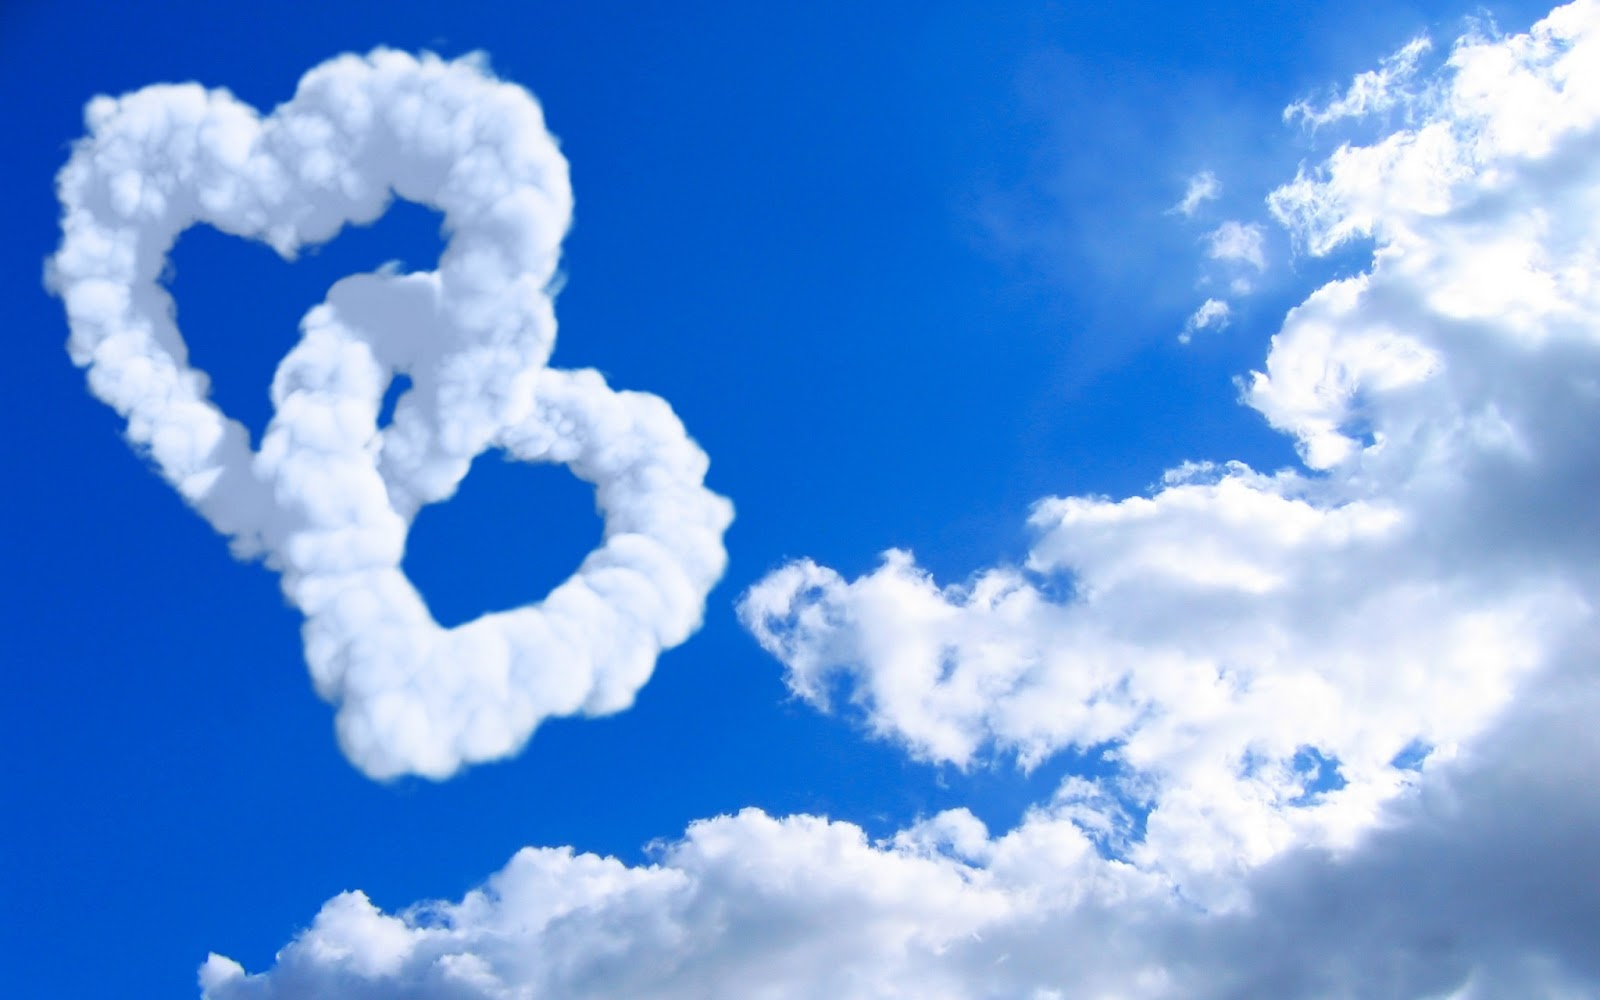 3d Love Wallpaper For Pc : Free Wallpaper Dekstop: 3d love with clouds wallpaper, wallpaper for desktop